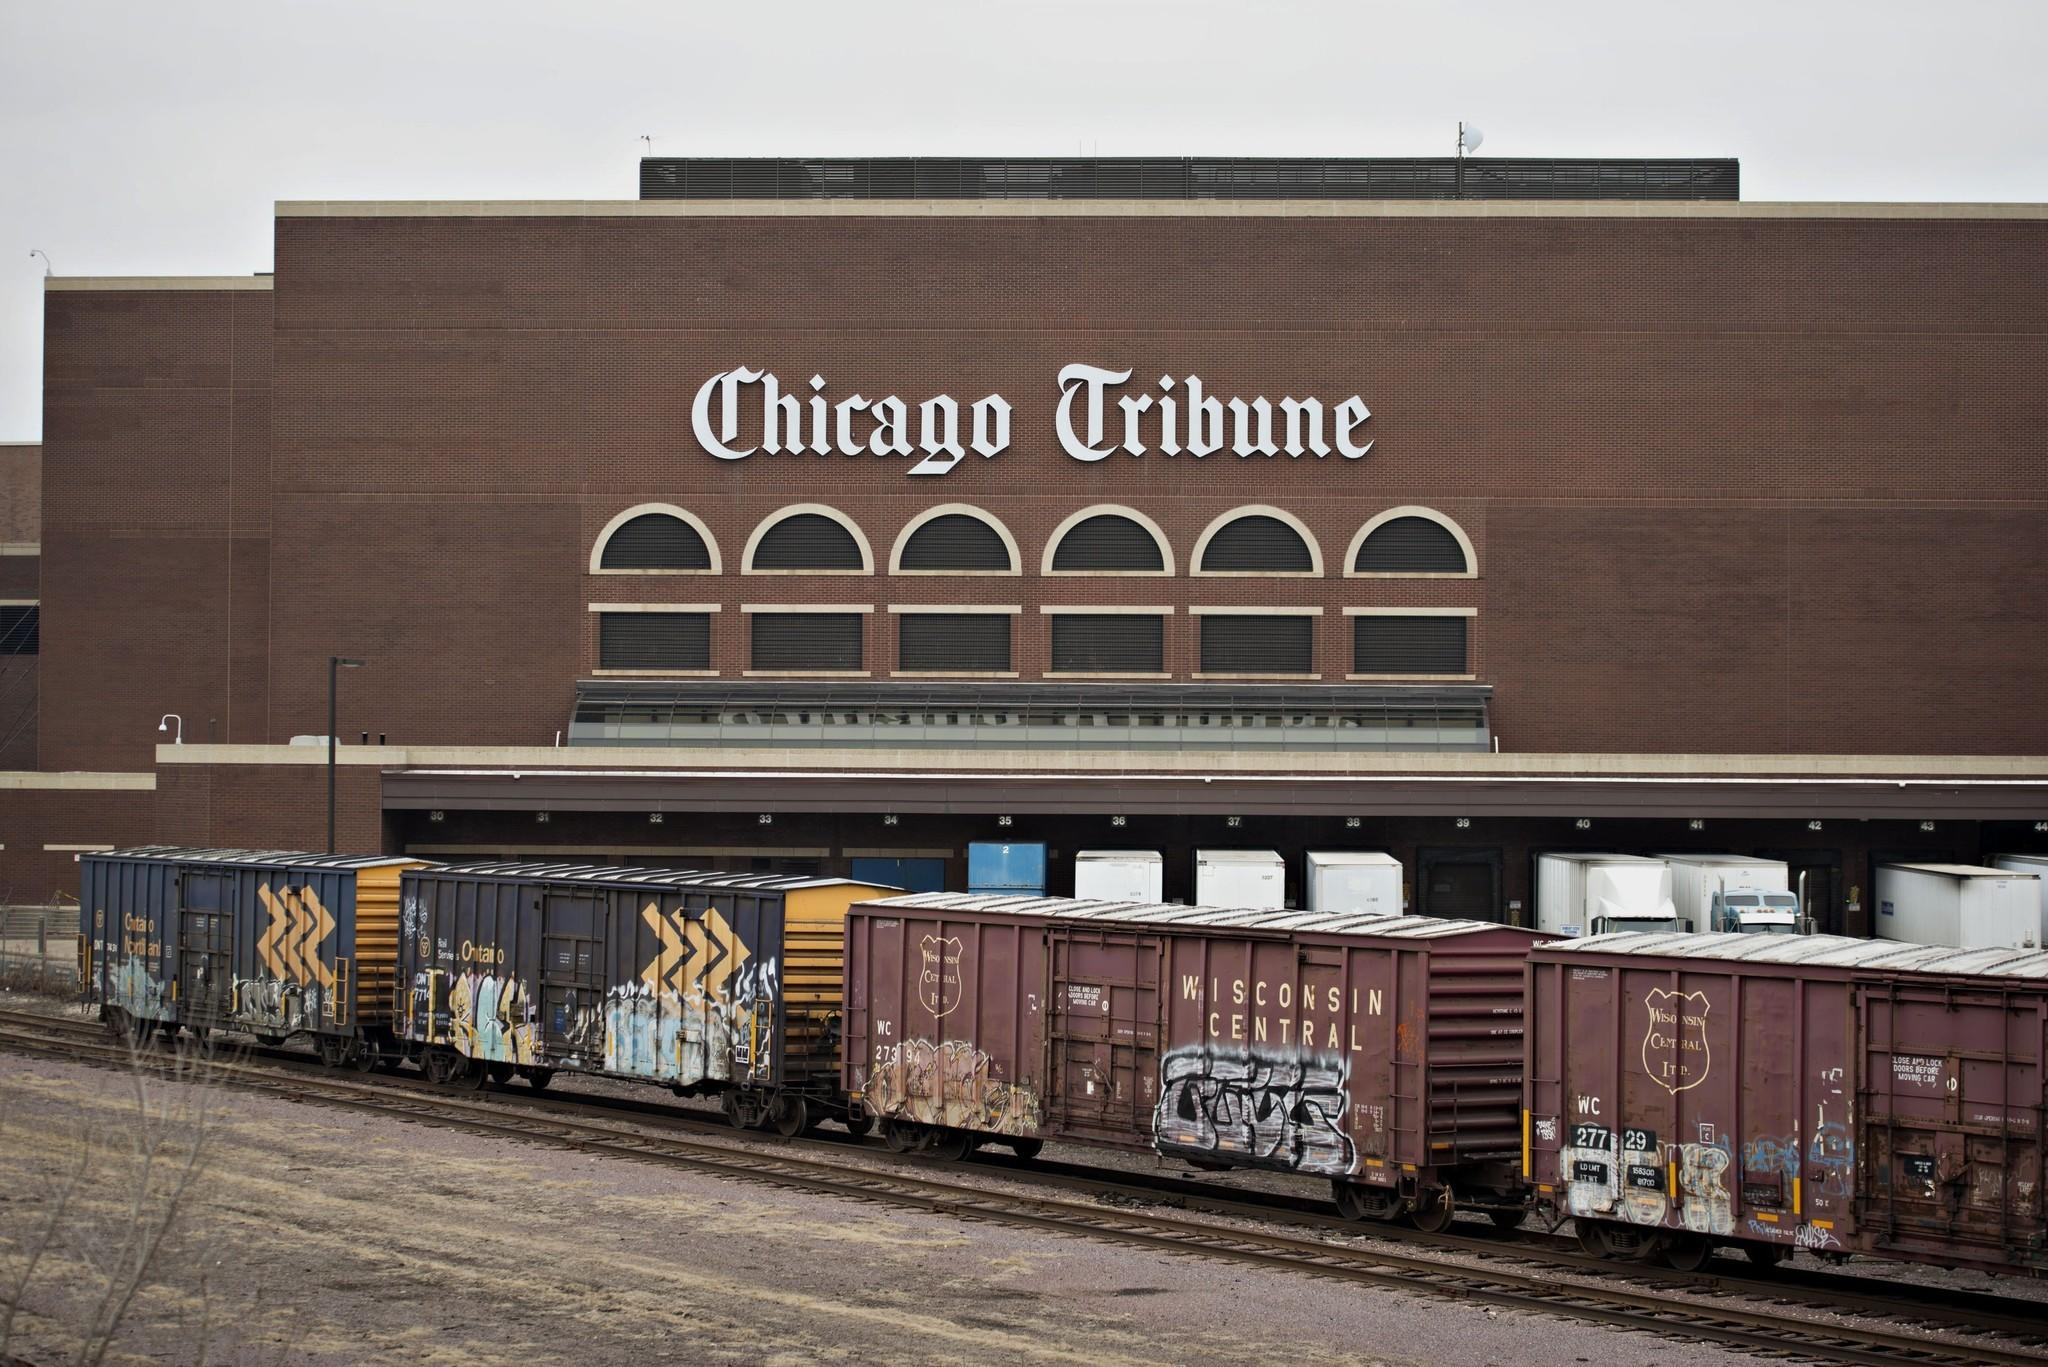 The new Tribune Publishing Co. will own the Los Angeles Times, the Chicago Tribune and other newspapers